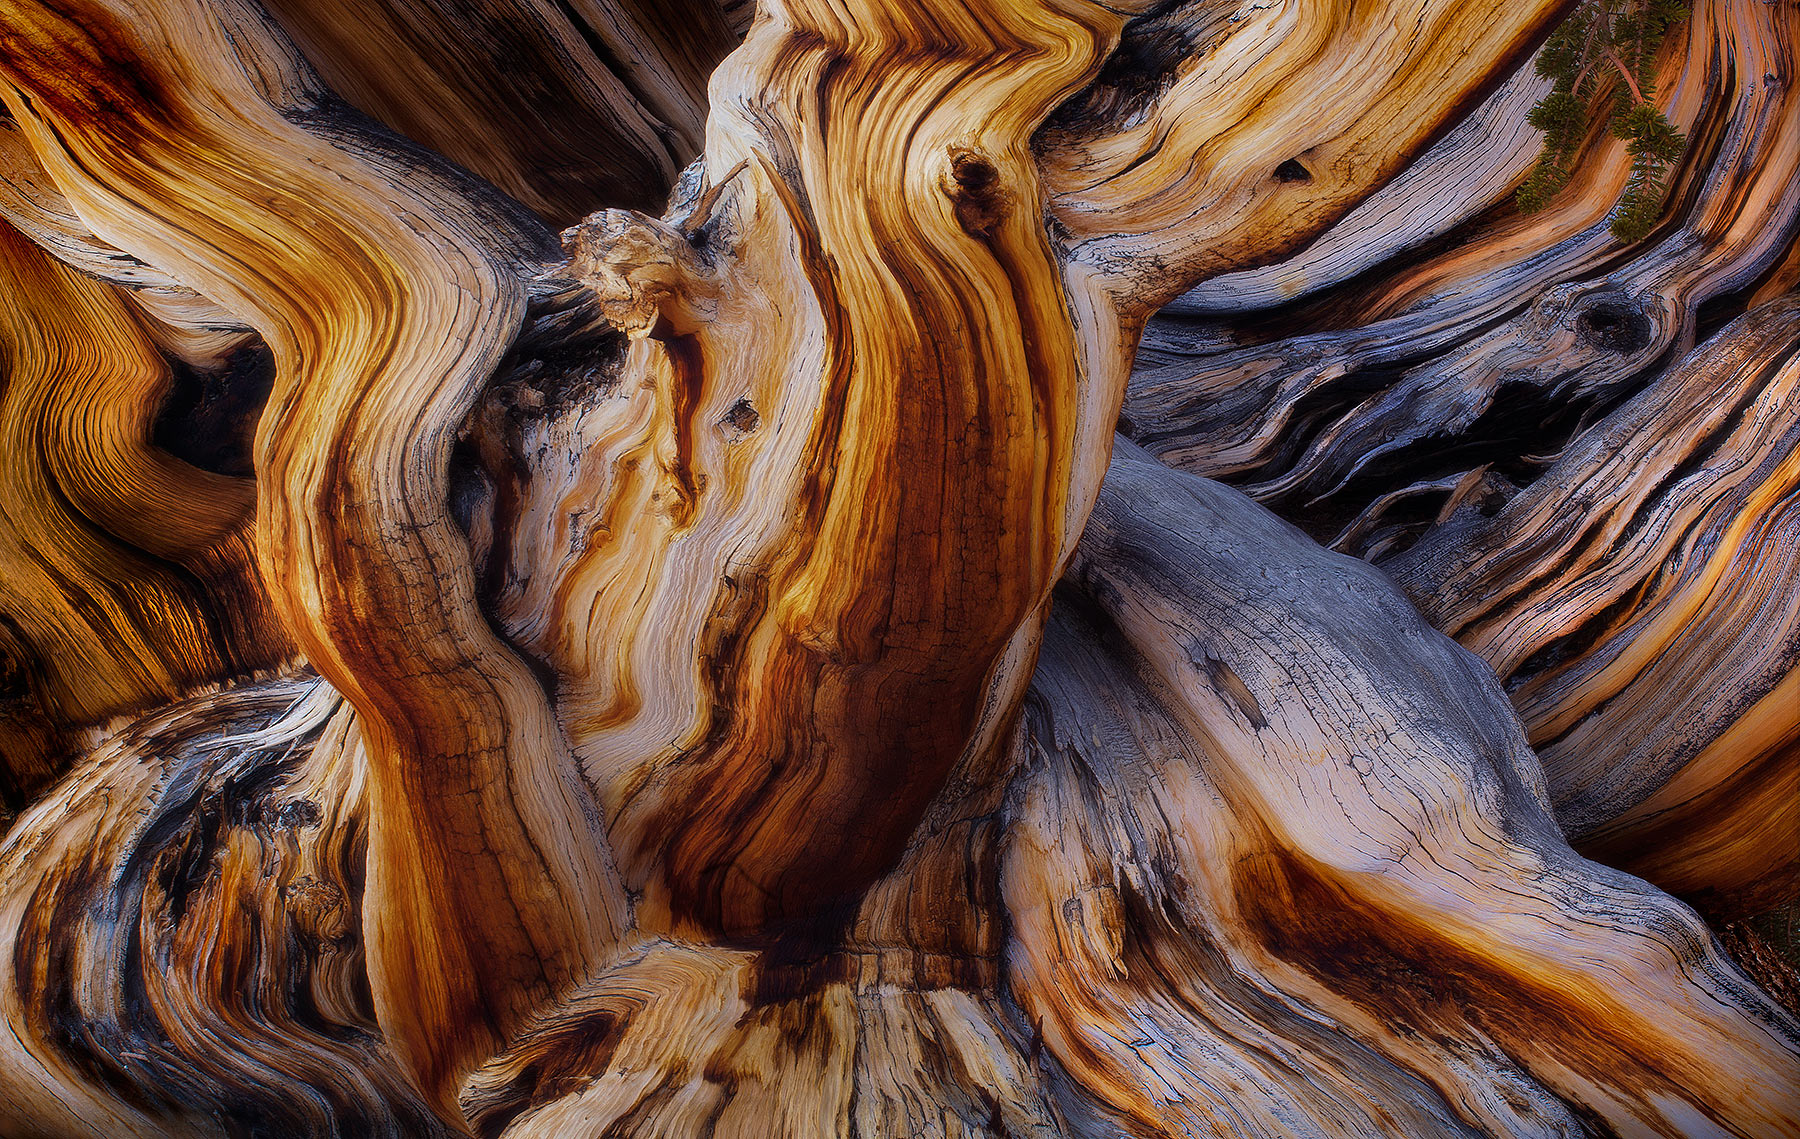 Bristlecone, Pine, White Mountains, old, gnarled, bark, tree, trunk, photo